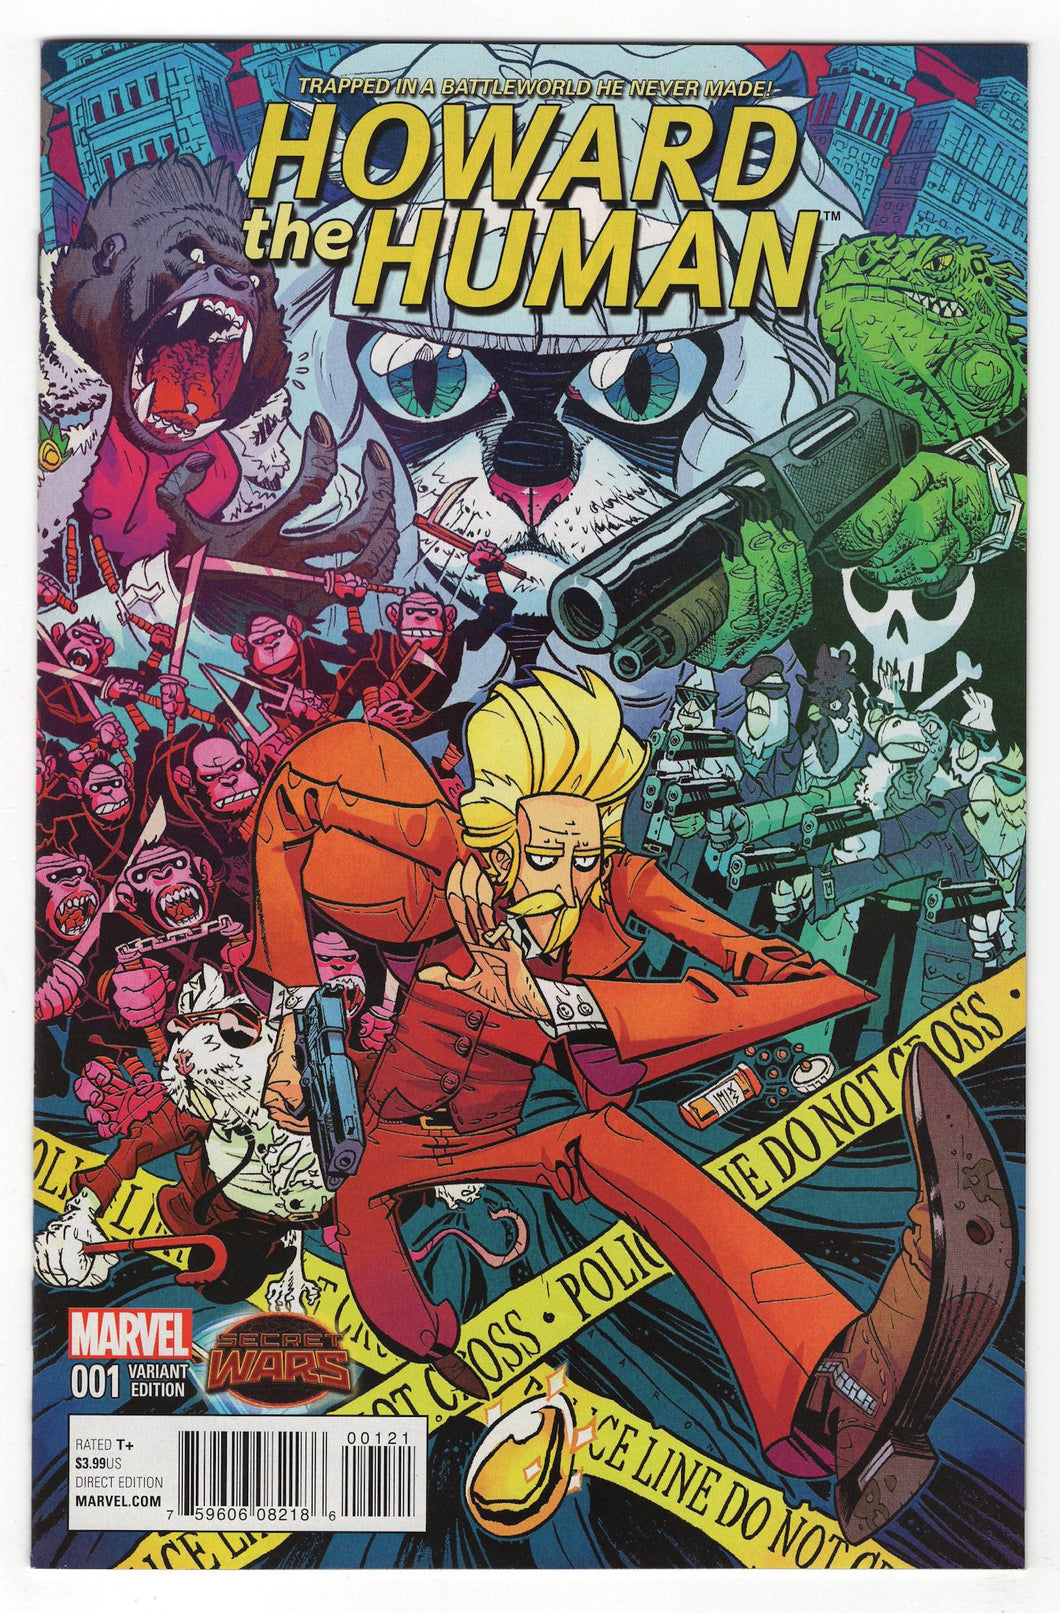 Howard the Human #1 Variant Cover Front